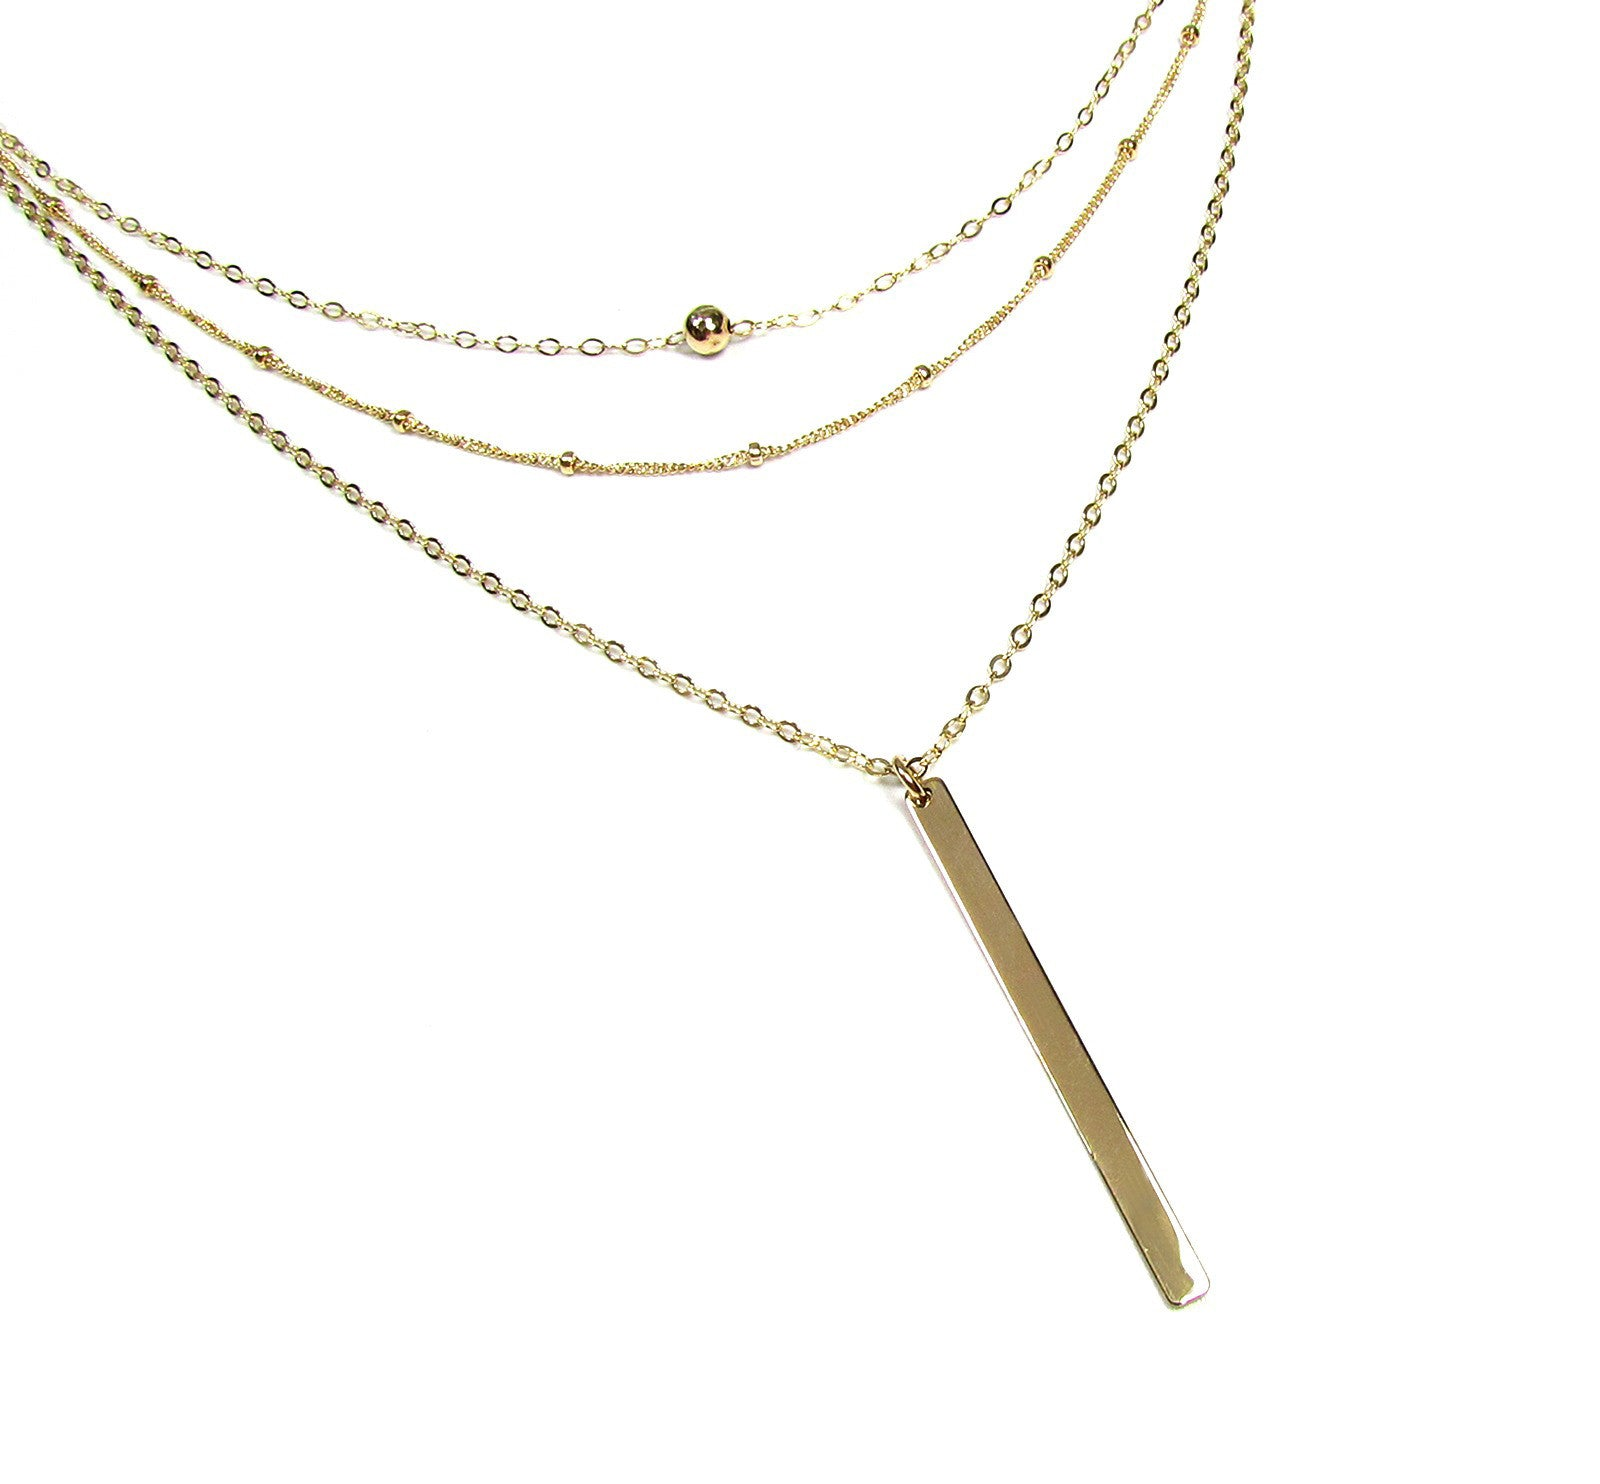 Set of 3 Layering Necklaces- Tiny Hammered Bead Necklace, Beaded Satellite Chain Necklace and Vertical Polished Bar Necklace